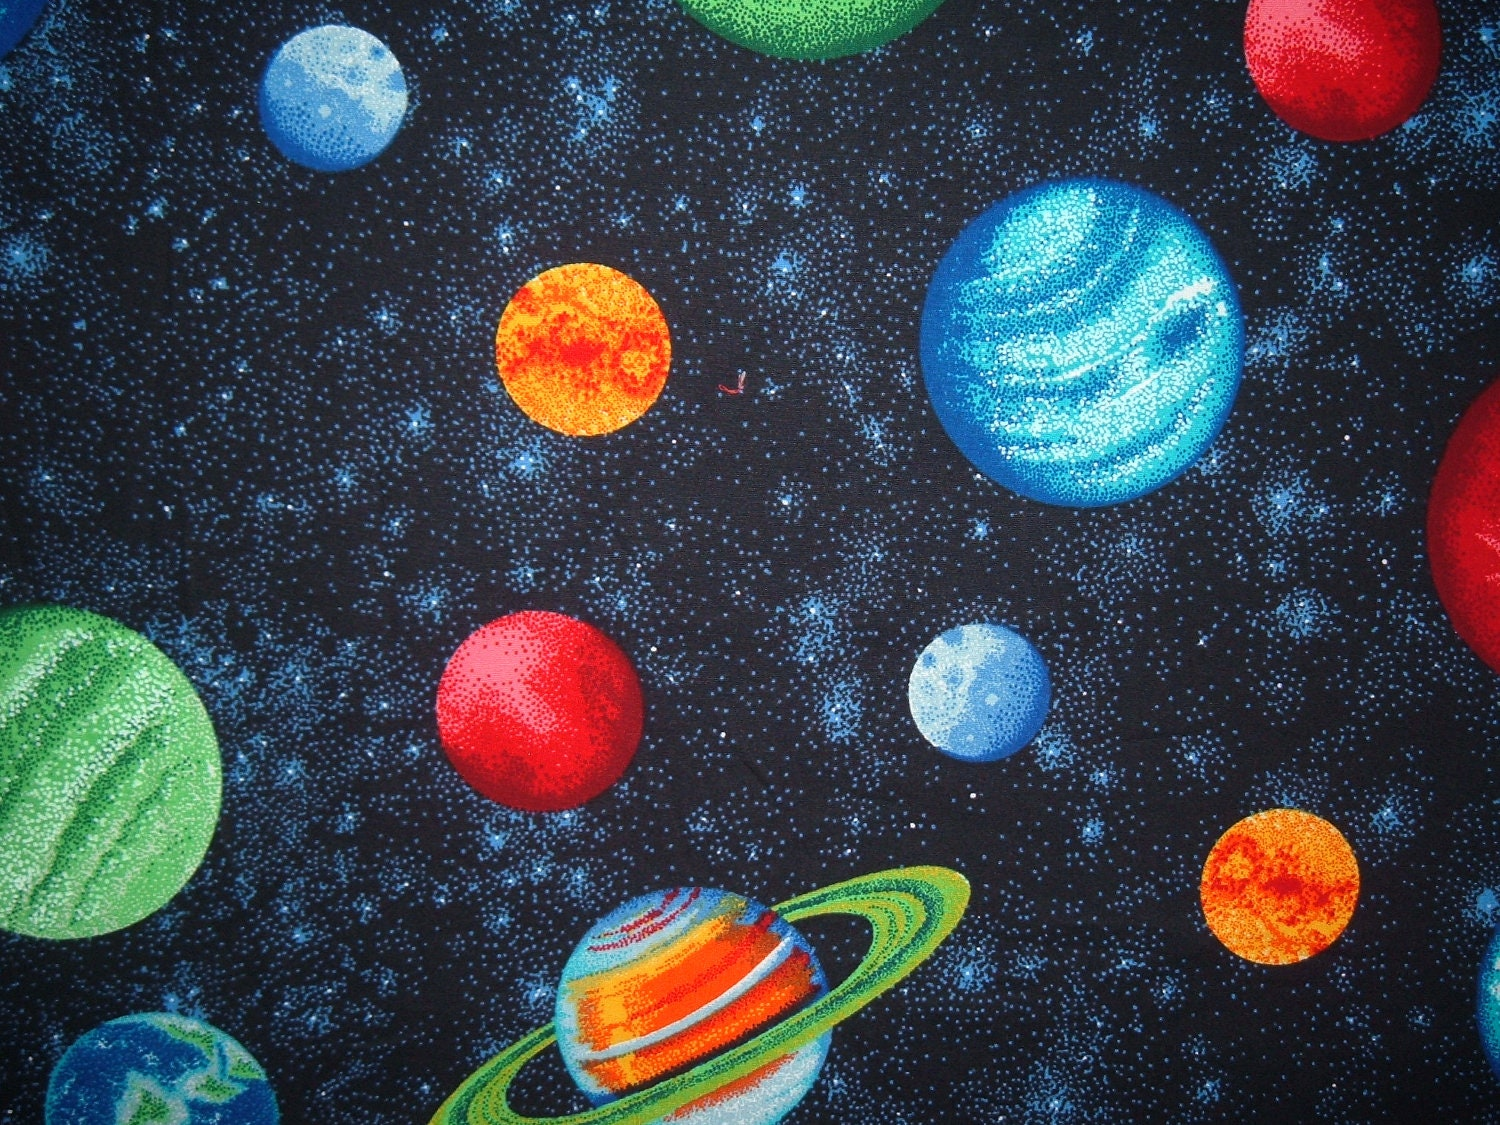 Cute Solar System - Pics about space